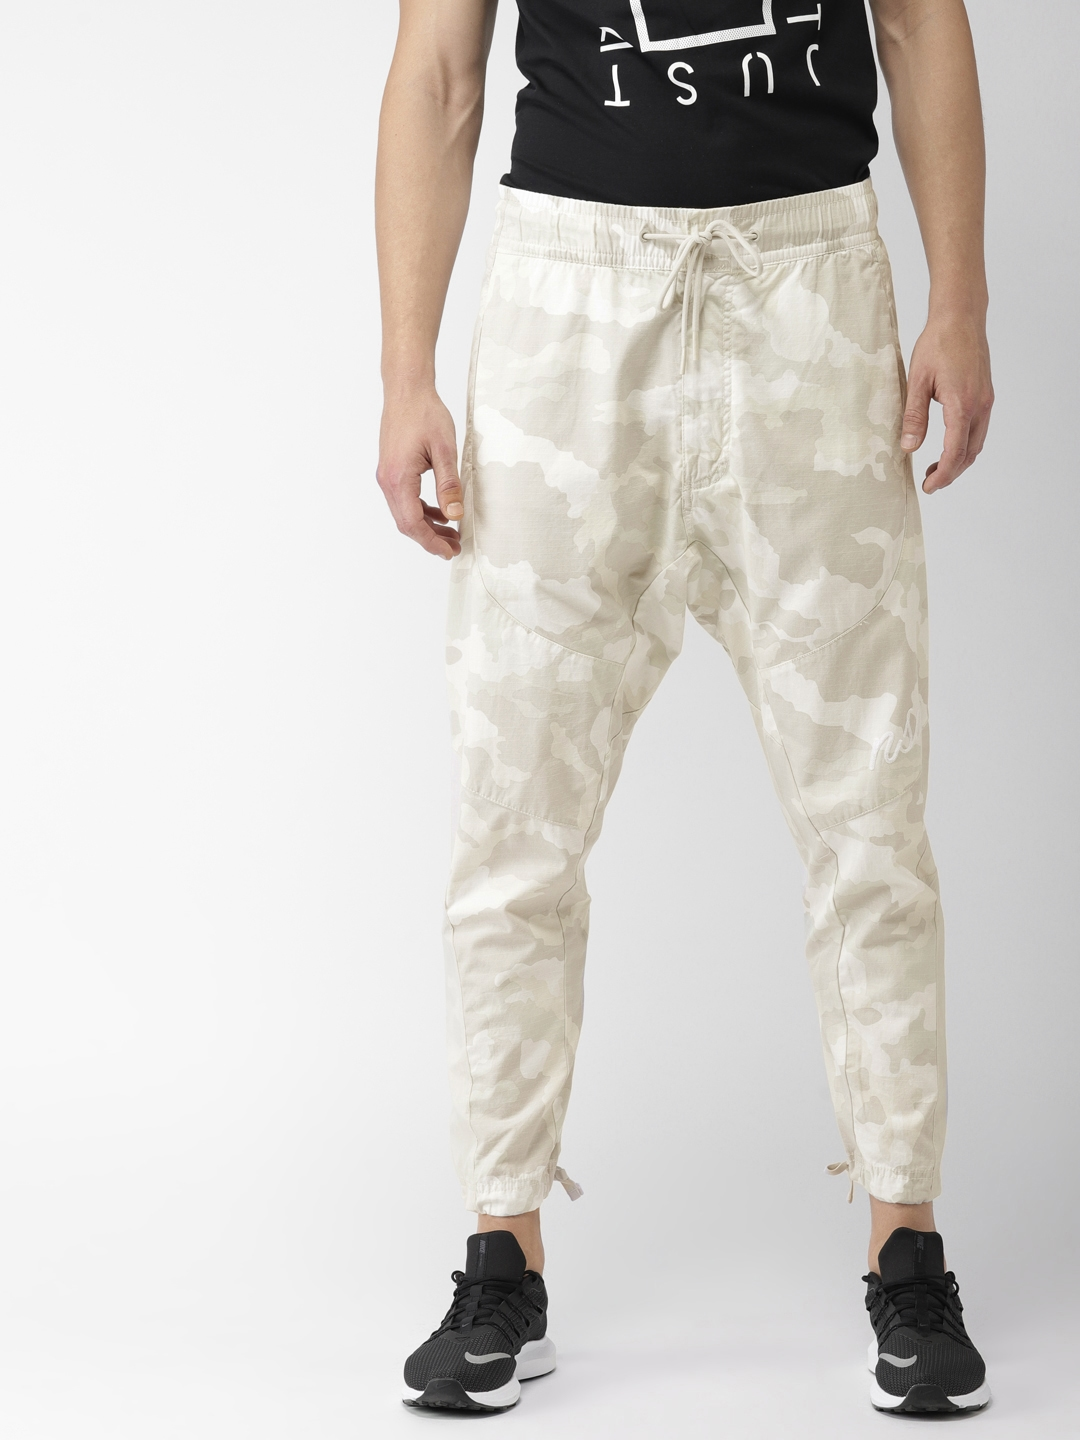 94d3c752369ef Buy Nike Men Beige Camouflage Print NSW PANT WVN CAMO Joggers ...